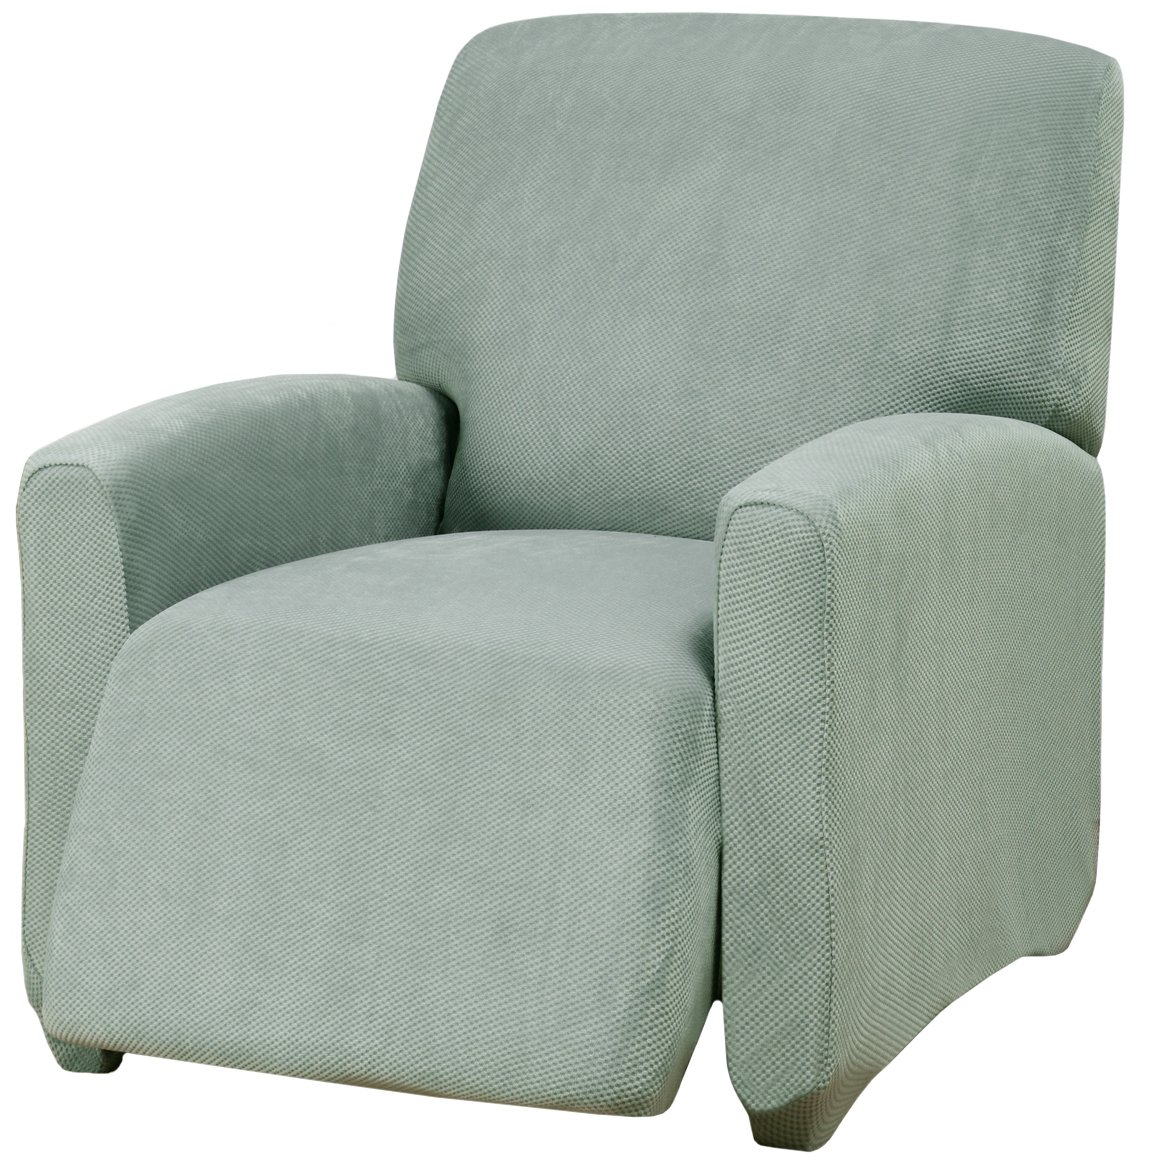 Madison Kathy Ireland Day Break Recliner Slipcover, Seaglass, Large by Madison